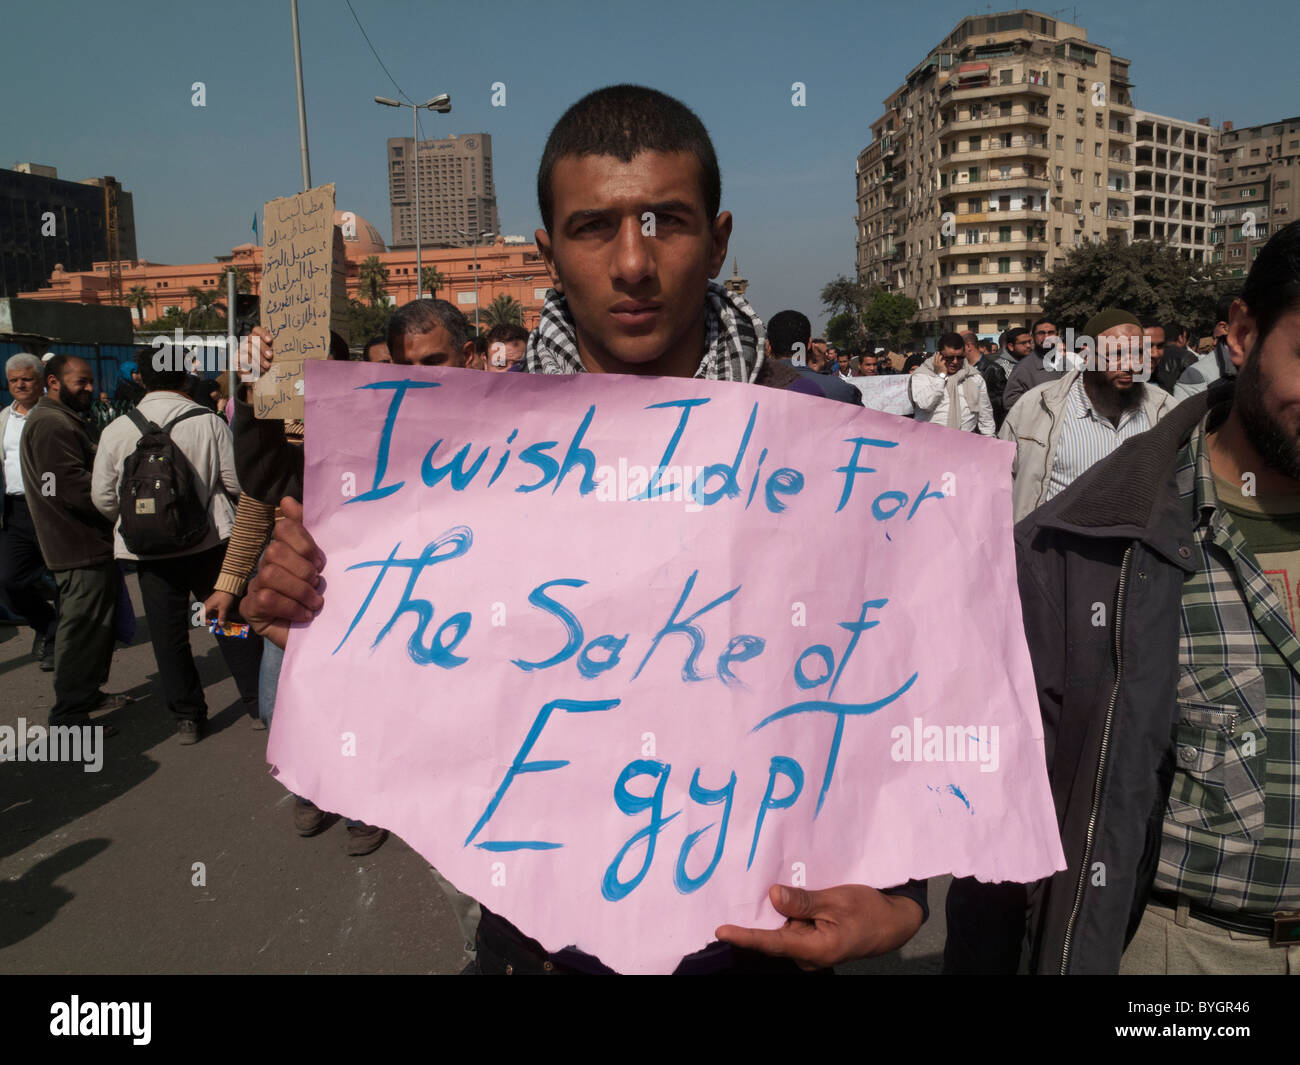 protestor with sign I wish I die for the sake of Egypt, Tahrir Square, Cairo - Stock Image